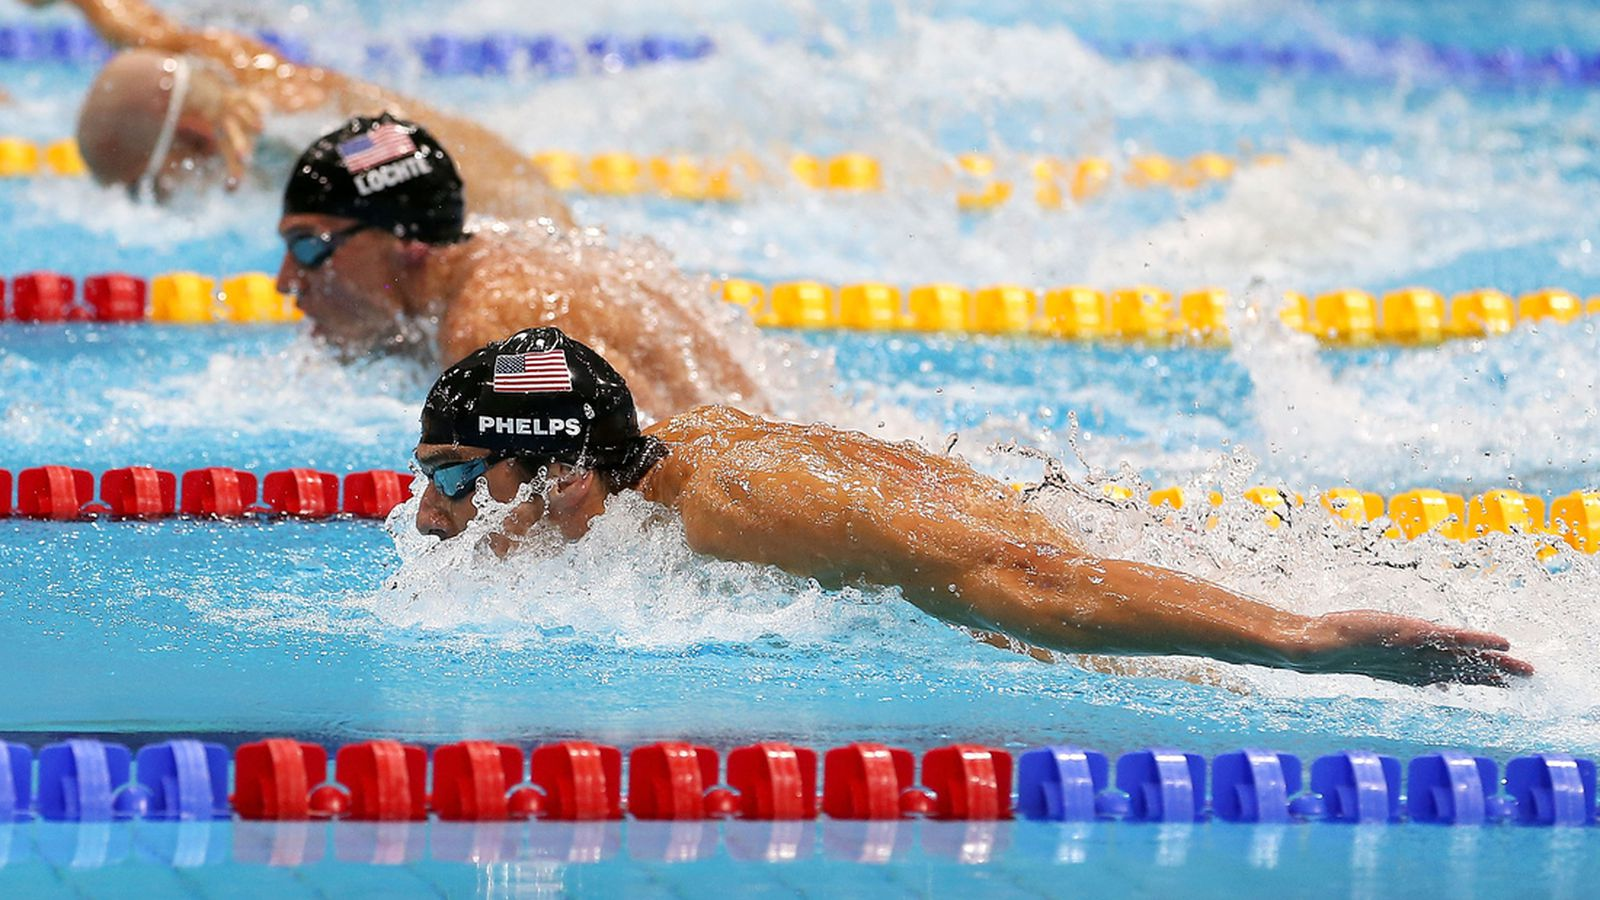 Golden Again Michael Phelps Wins 200m Im For Medal No 20